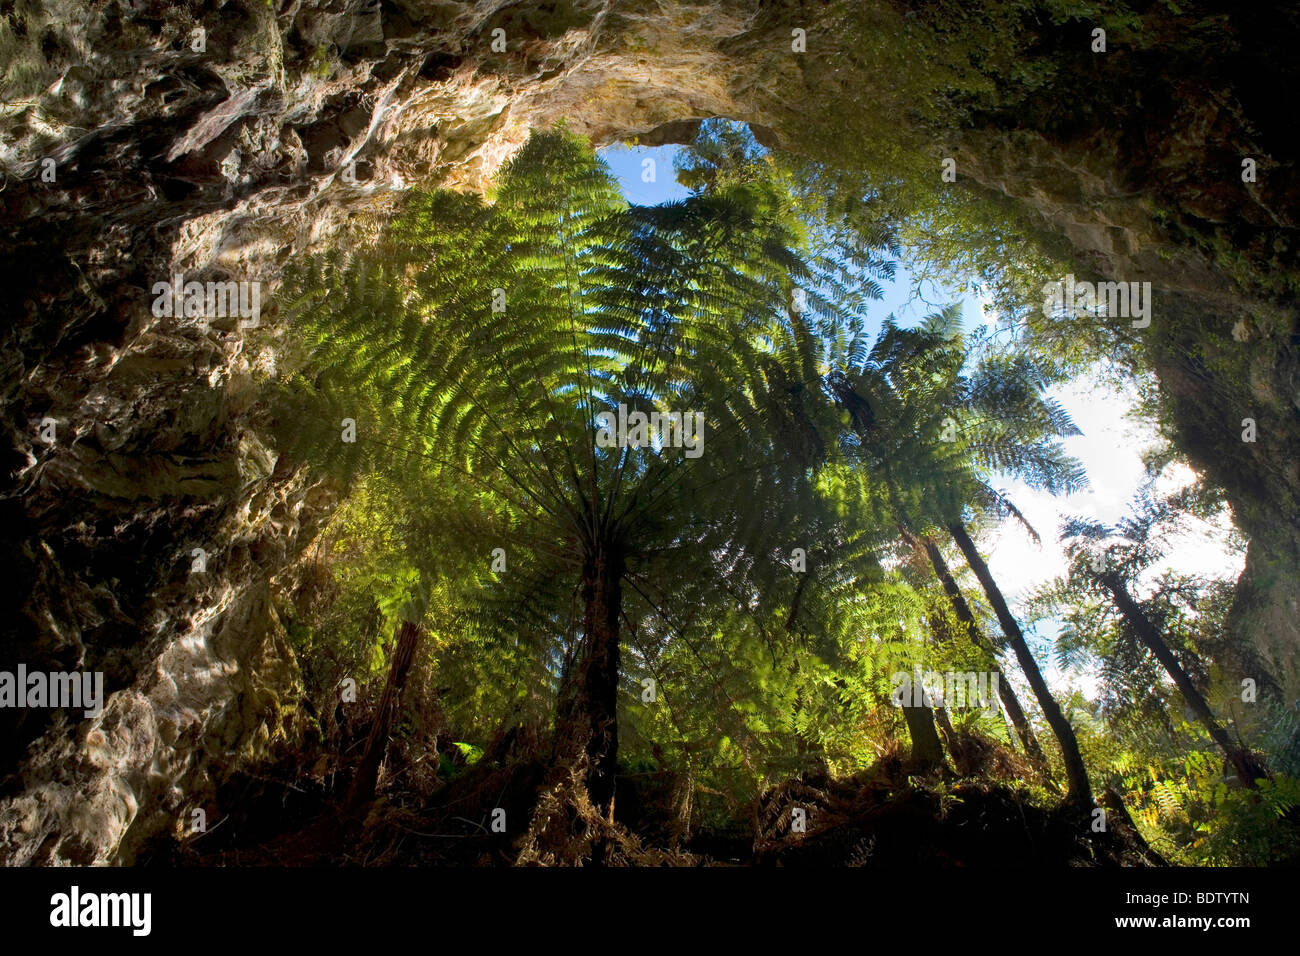 view from sacred cave, Waikato, North Island, New Zealand - Stock Image